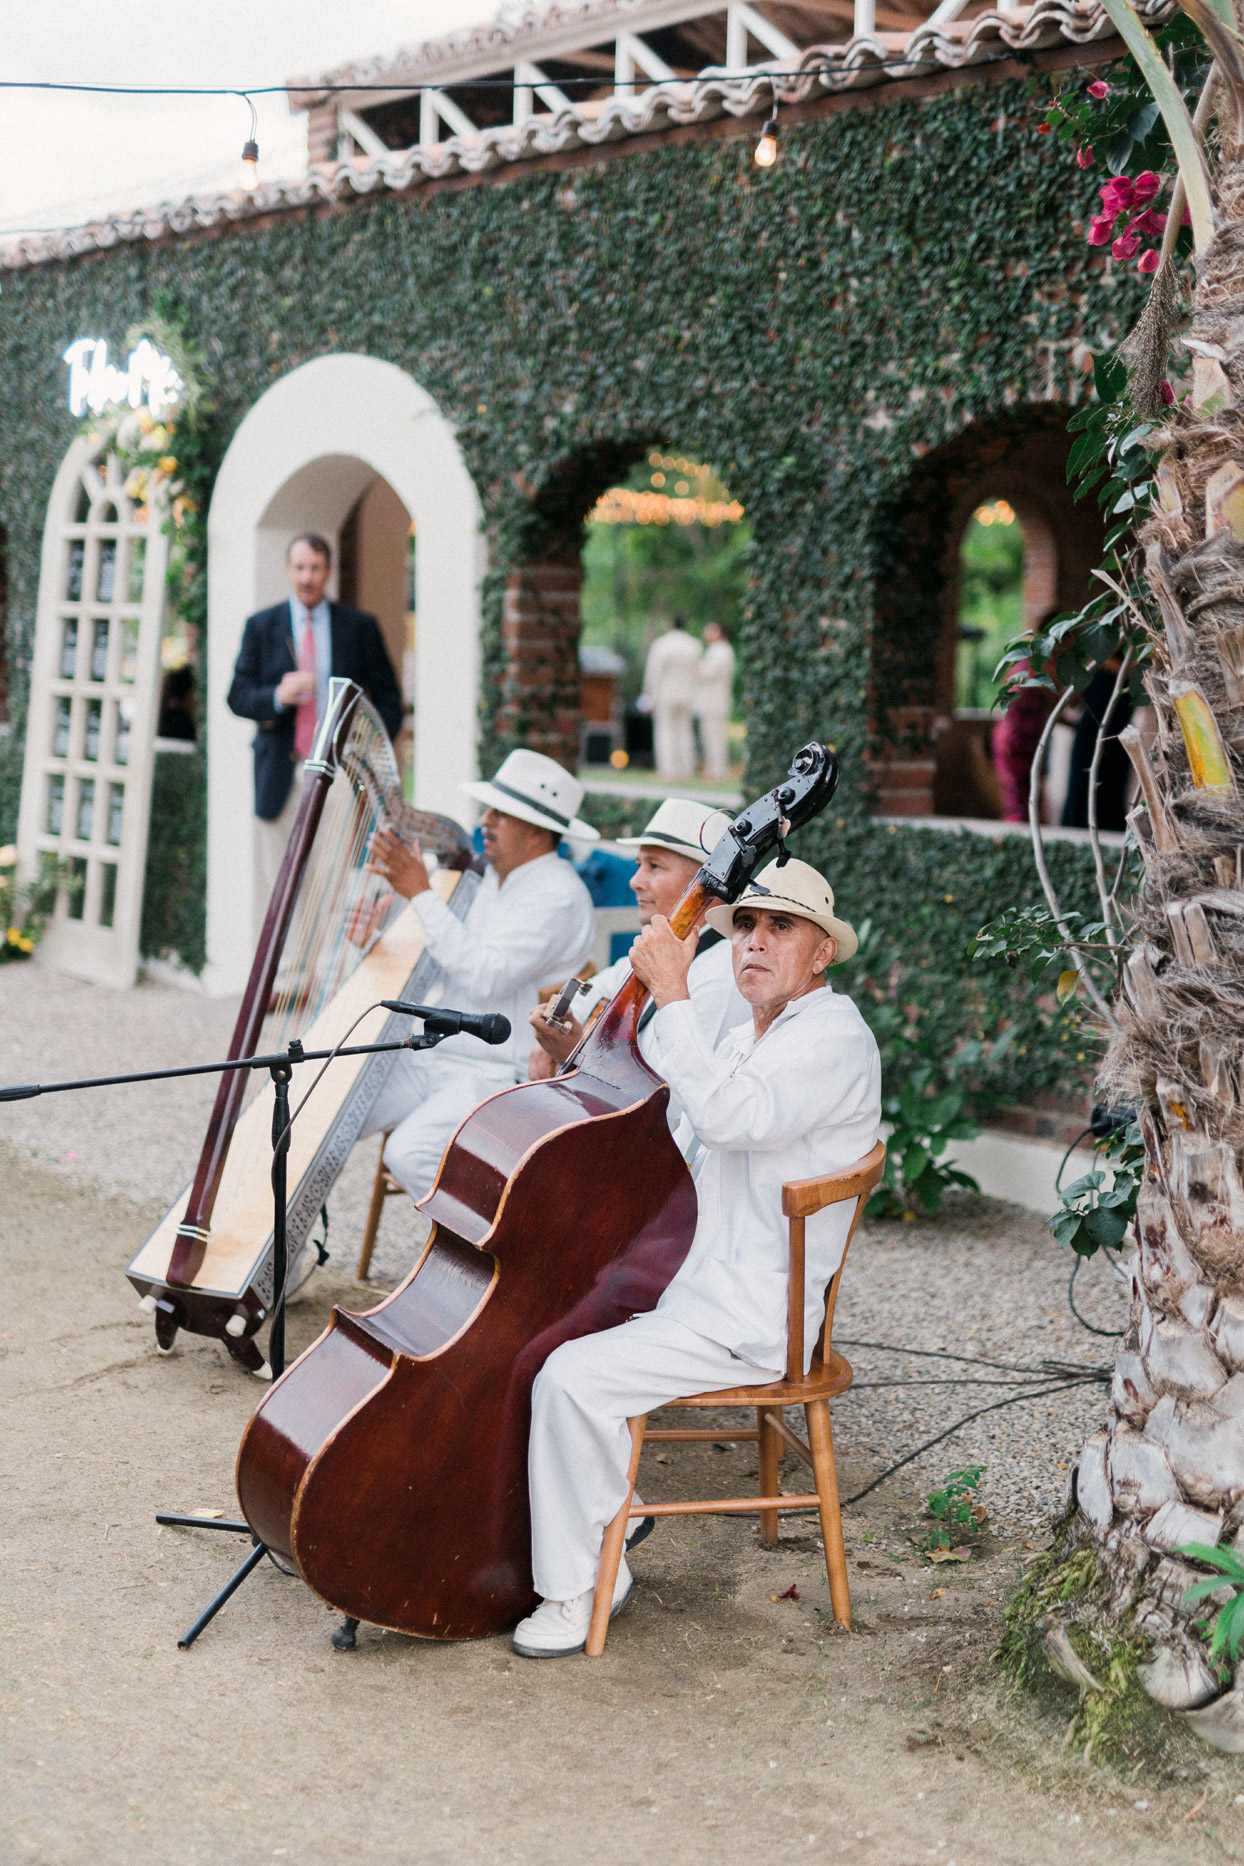 jazz trio sitting outdoors with upright bass, guitar, and harp